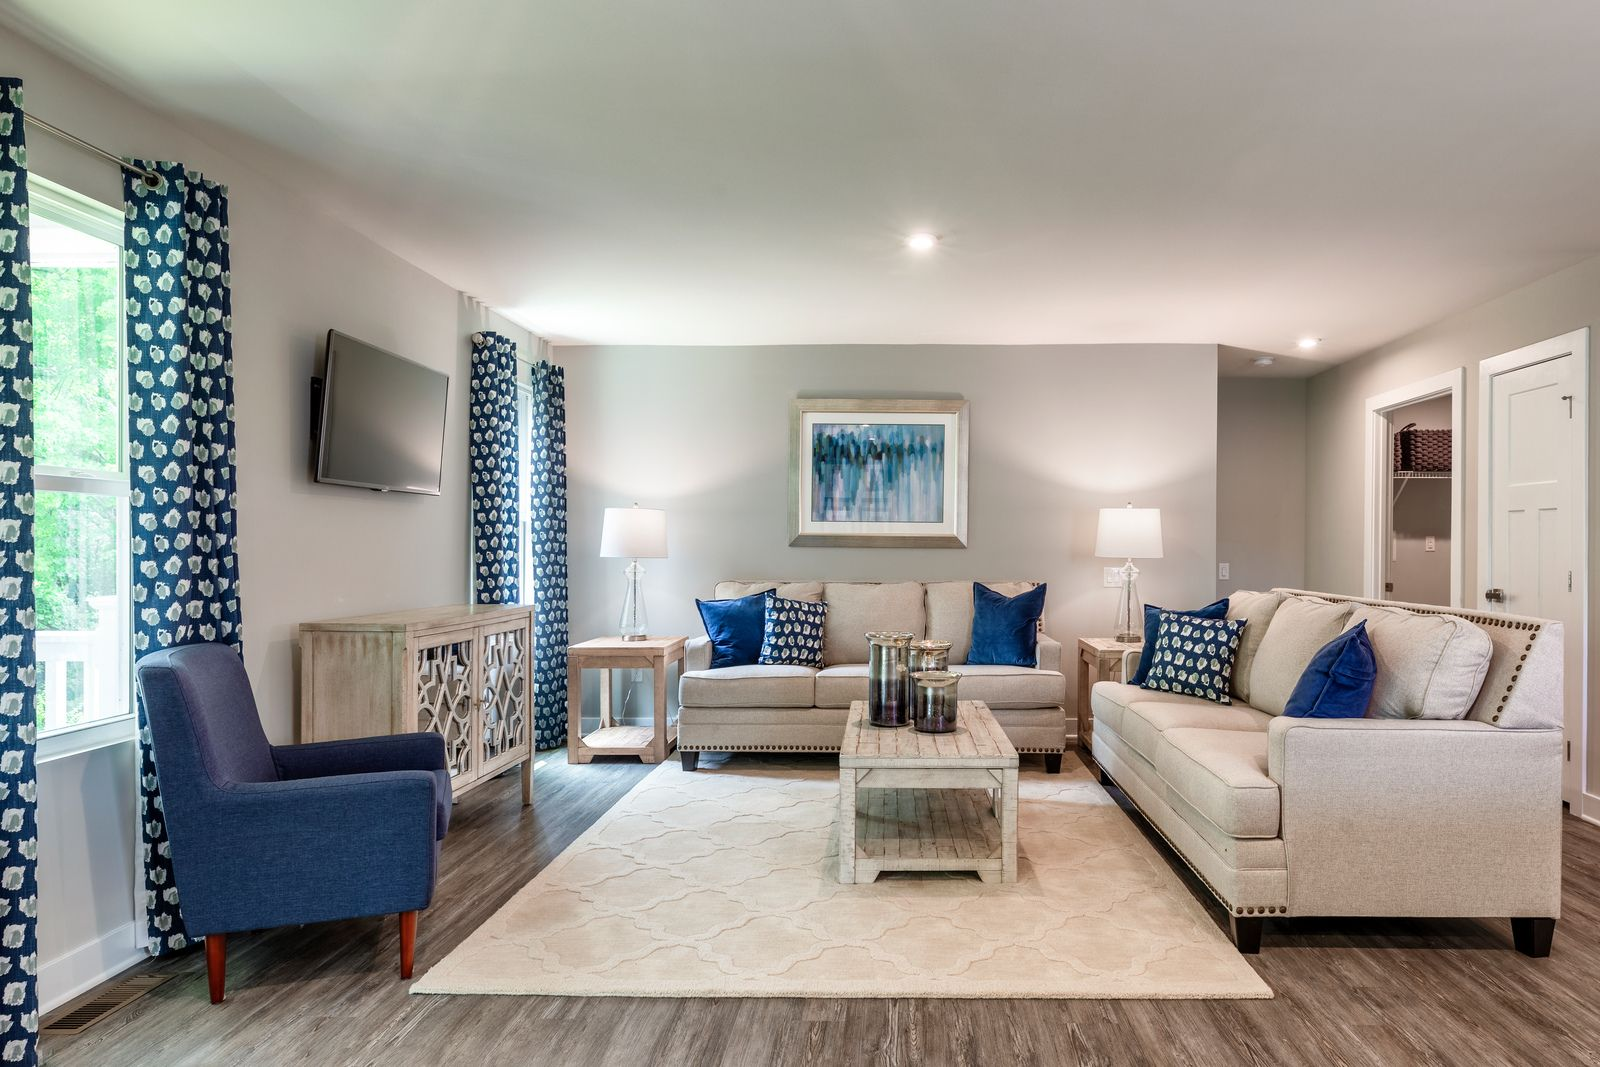 Living Area featured in the Dominica Spring By Ryan Homes in Philadelphia, NJ